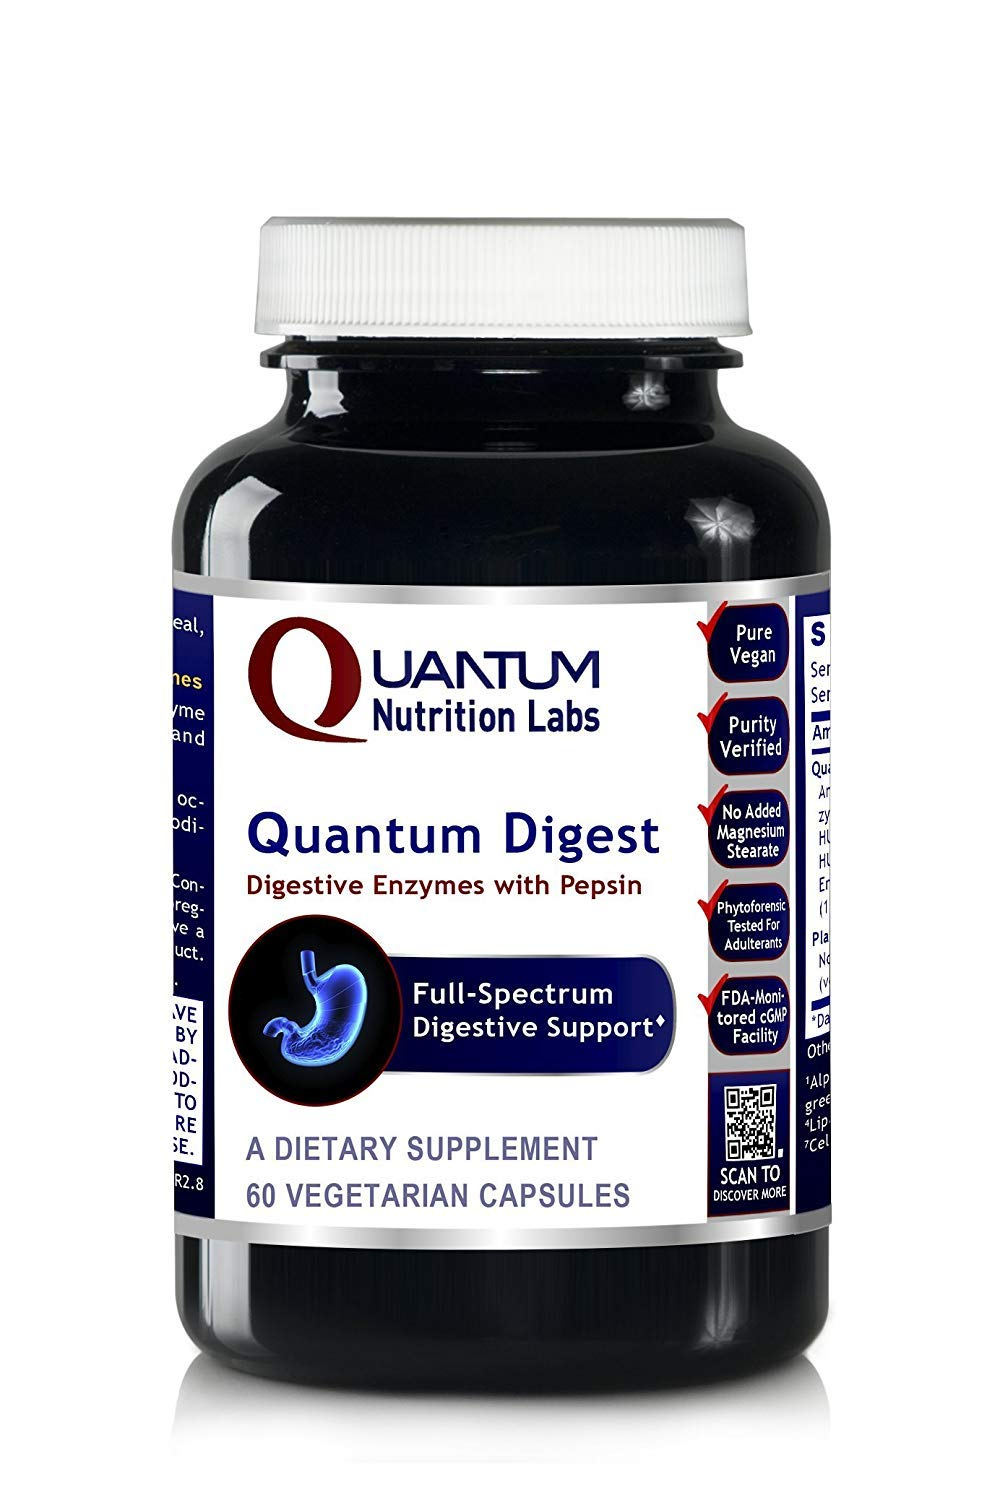 Quantum Digest, 240 Veg caps (4 Bottles) - Vegan Source Enzymes for Full Spectrum Premier Digestive Support for Fats, Carbohydrates, Proteins and Dairy